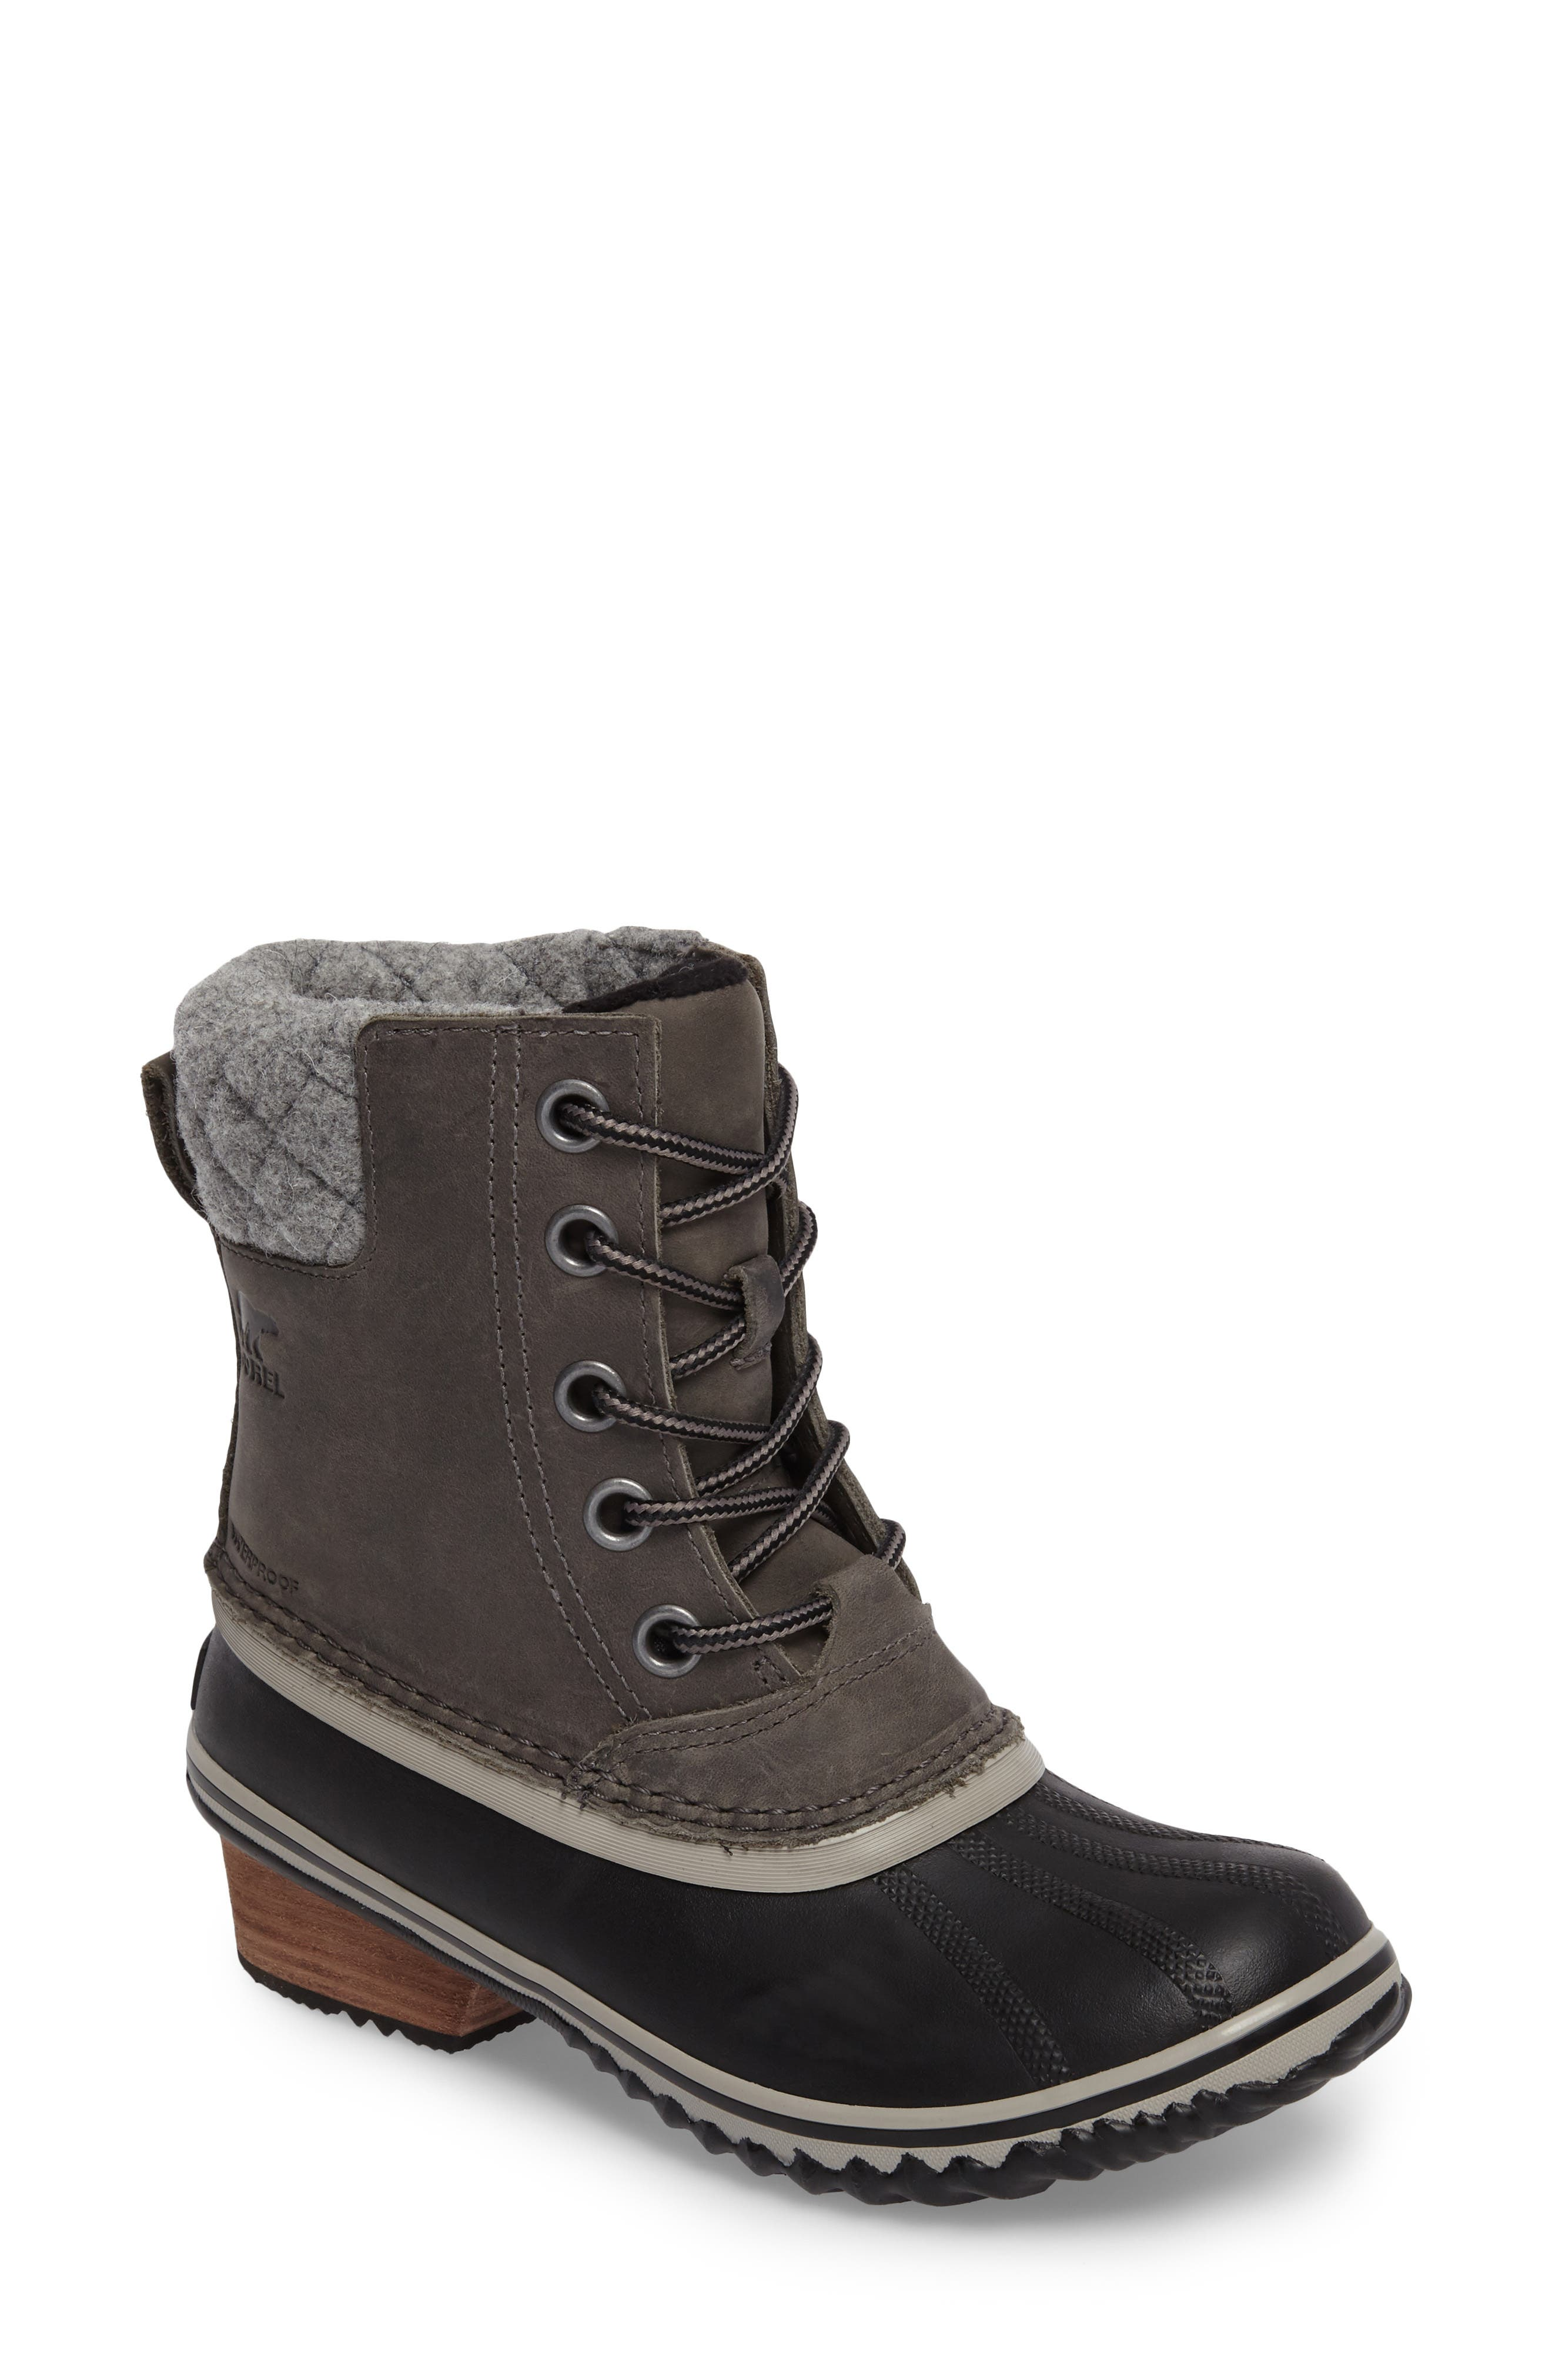 Sorel Slimpack Ii Waterproof Boot, Grey